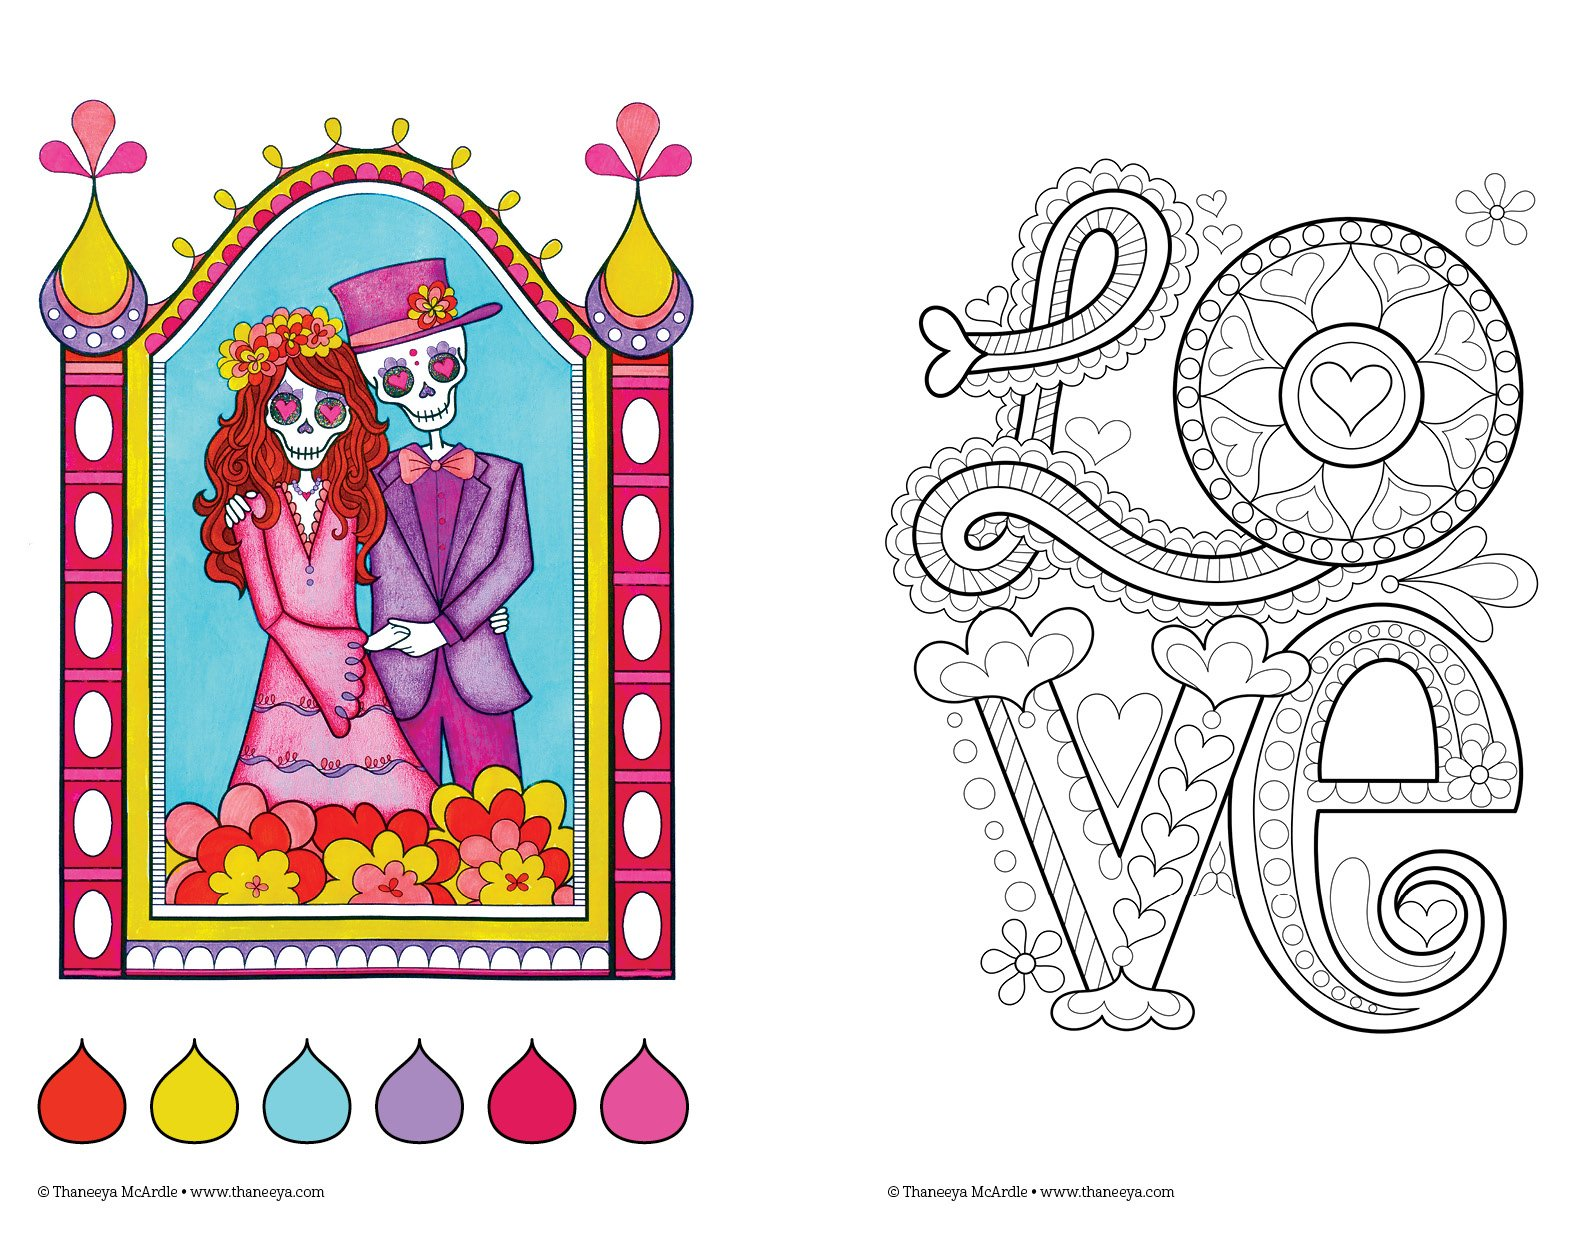 Amazon Color Love Coloring Book Perfectly Portable Pages On The Go Design Originals 9781497200357 Thaneeya Mcardle Books